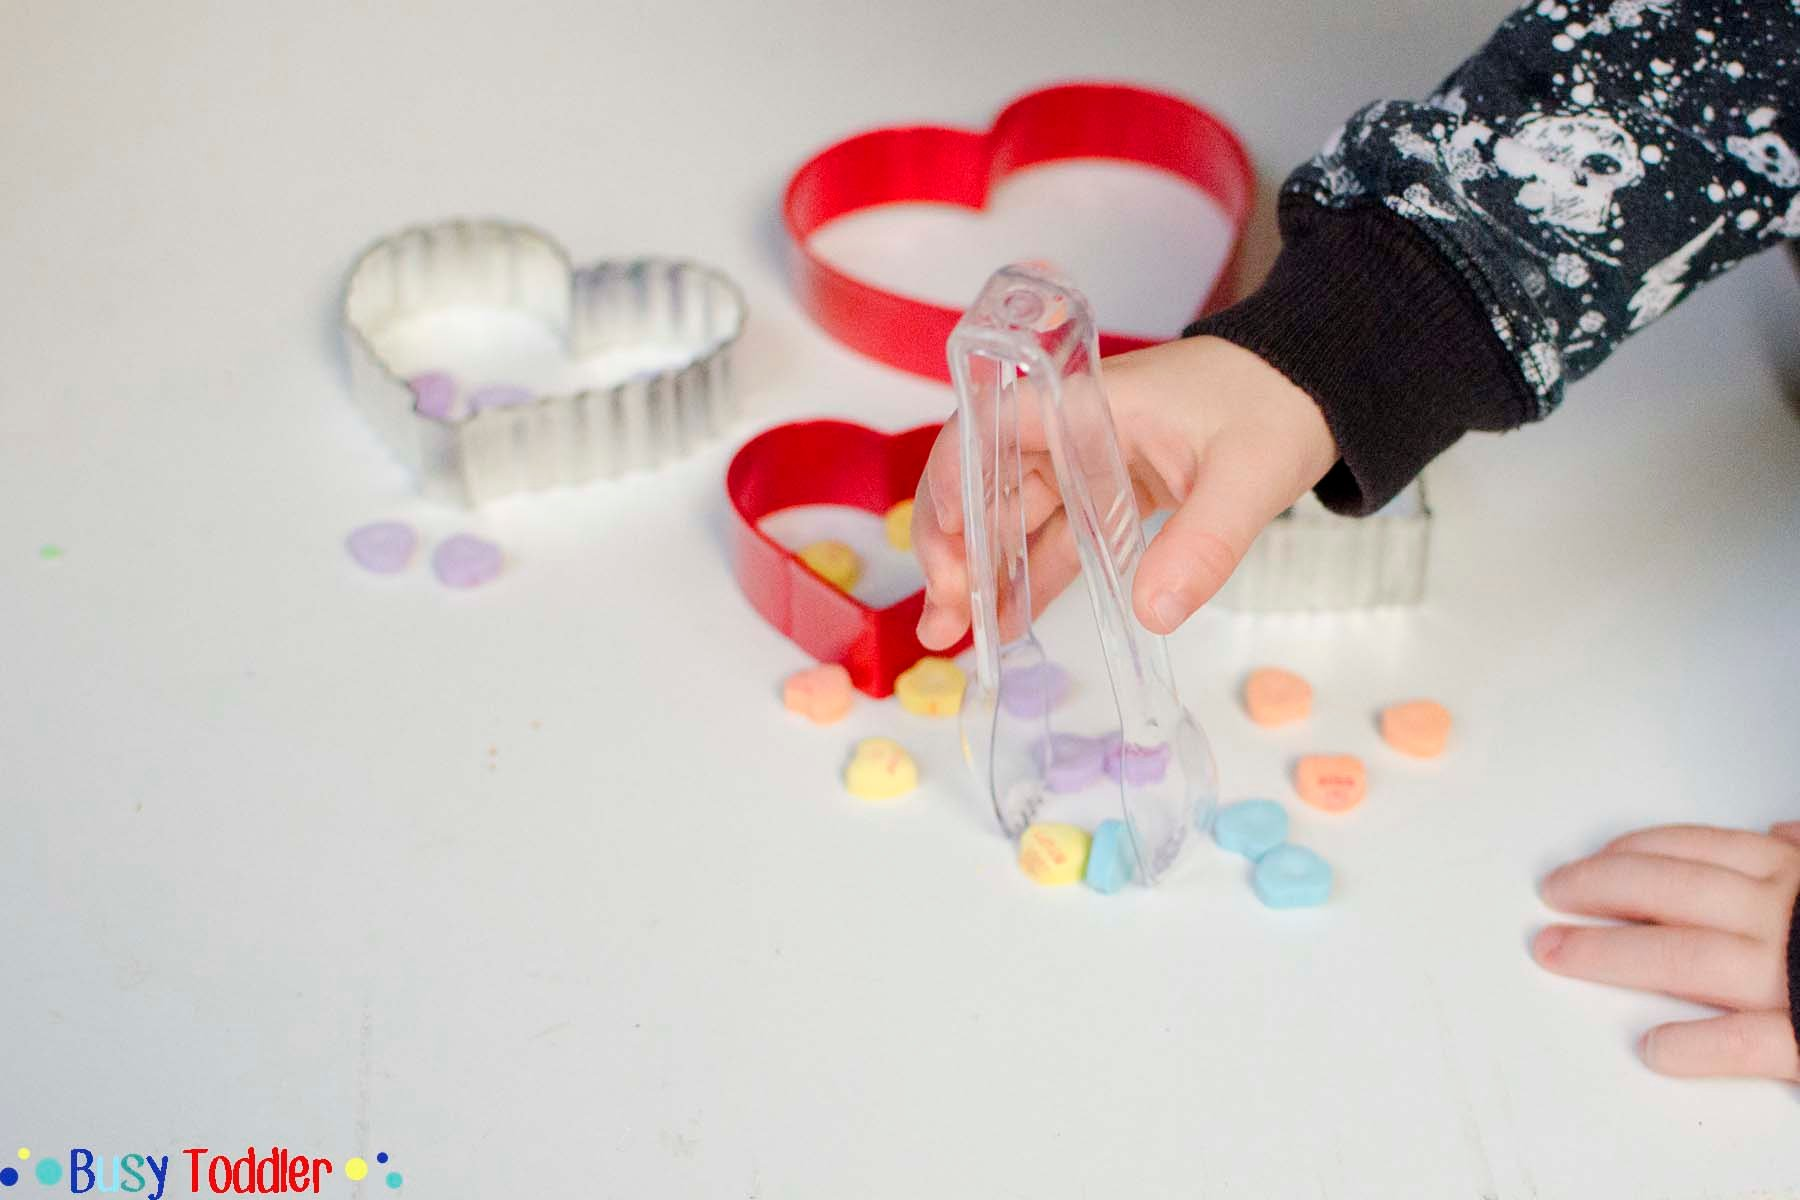 VALENTINE'S DAY SORTING ACTIVITY: A simple sorting game for toddlers using Conversation Hearts